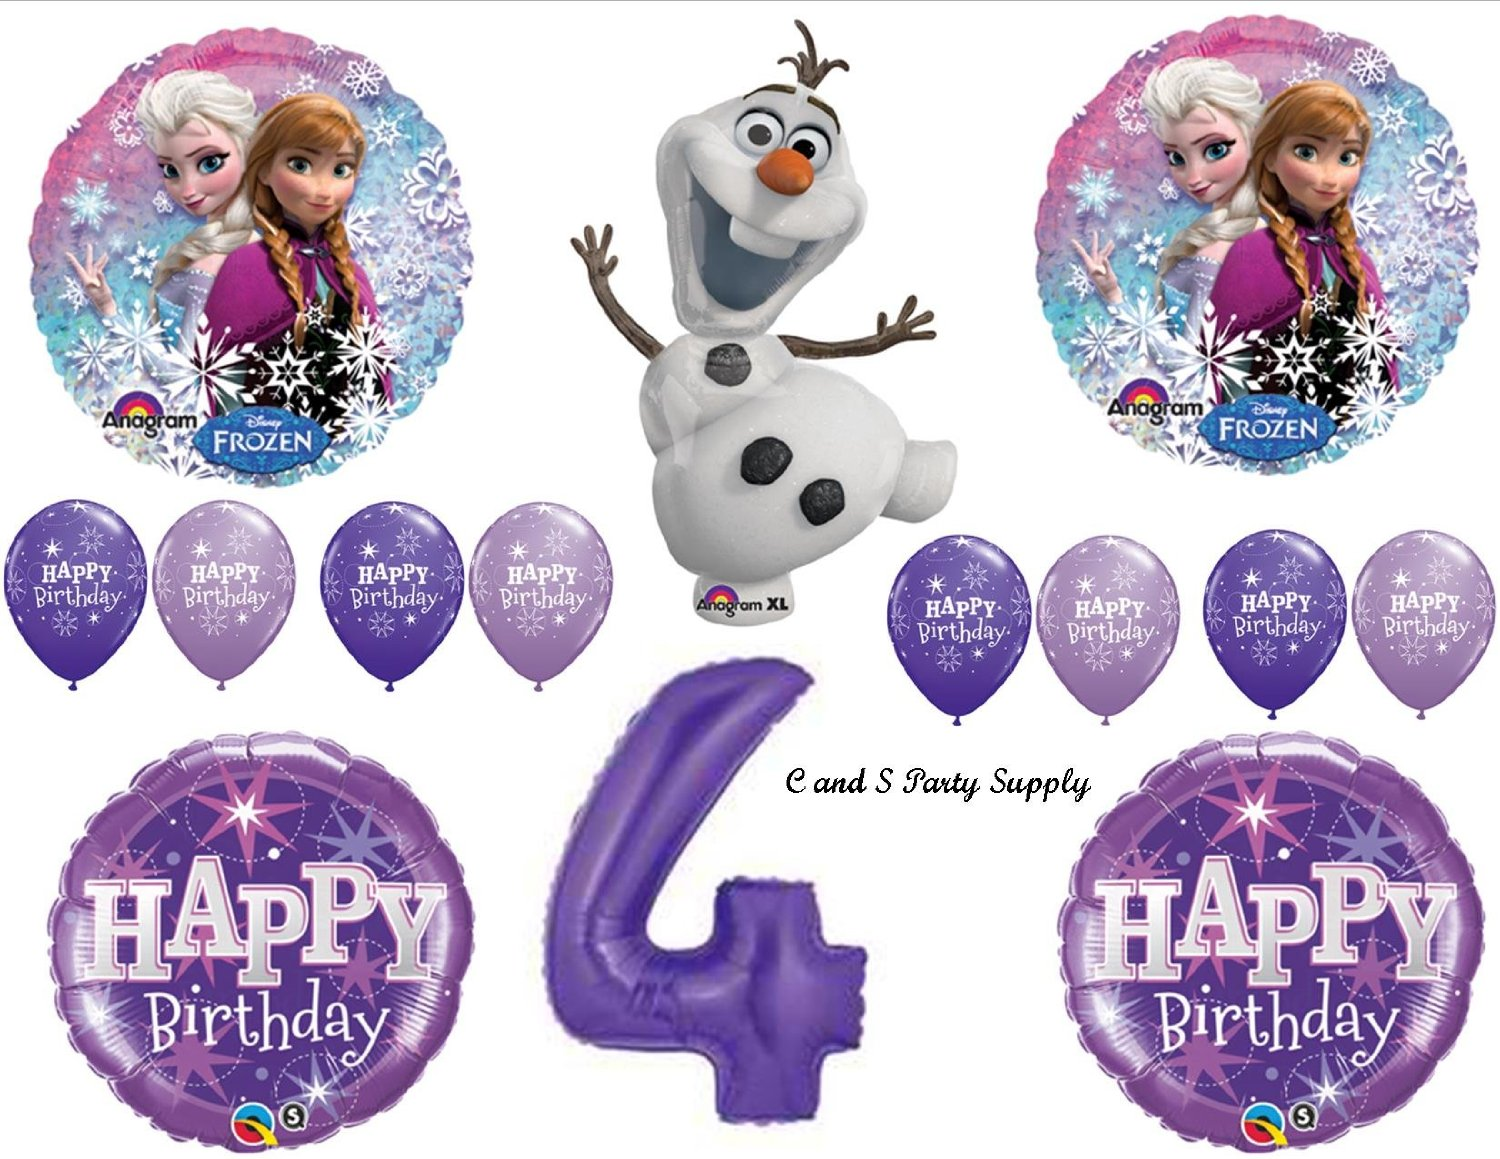 Frozen Olaf Purple 4th Disney Movie BIRTHDAY PARTY Balloons Decorations Supplies